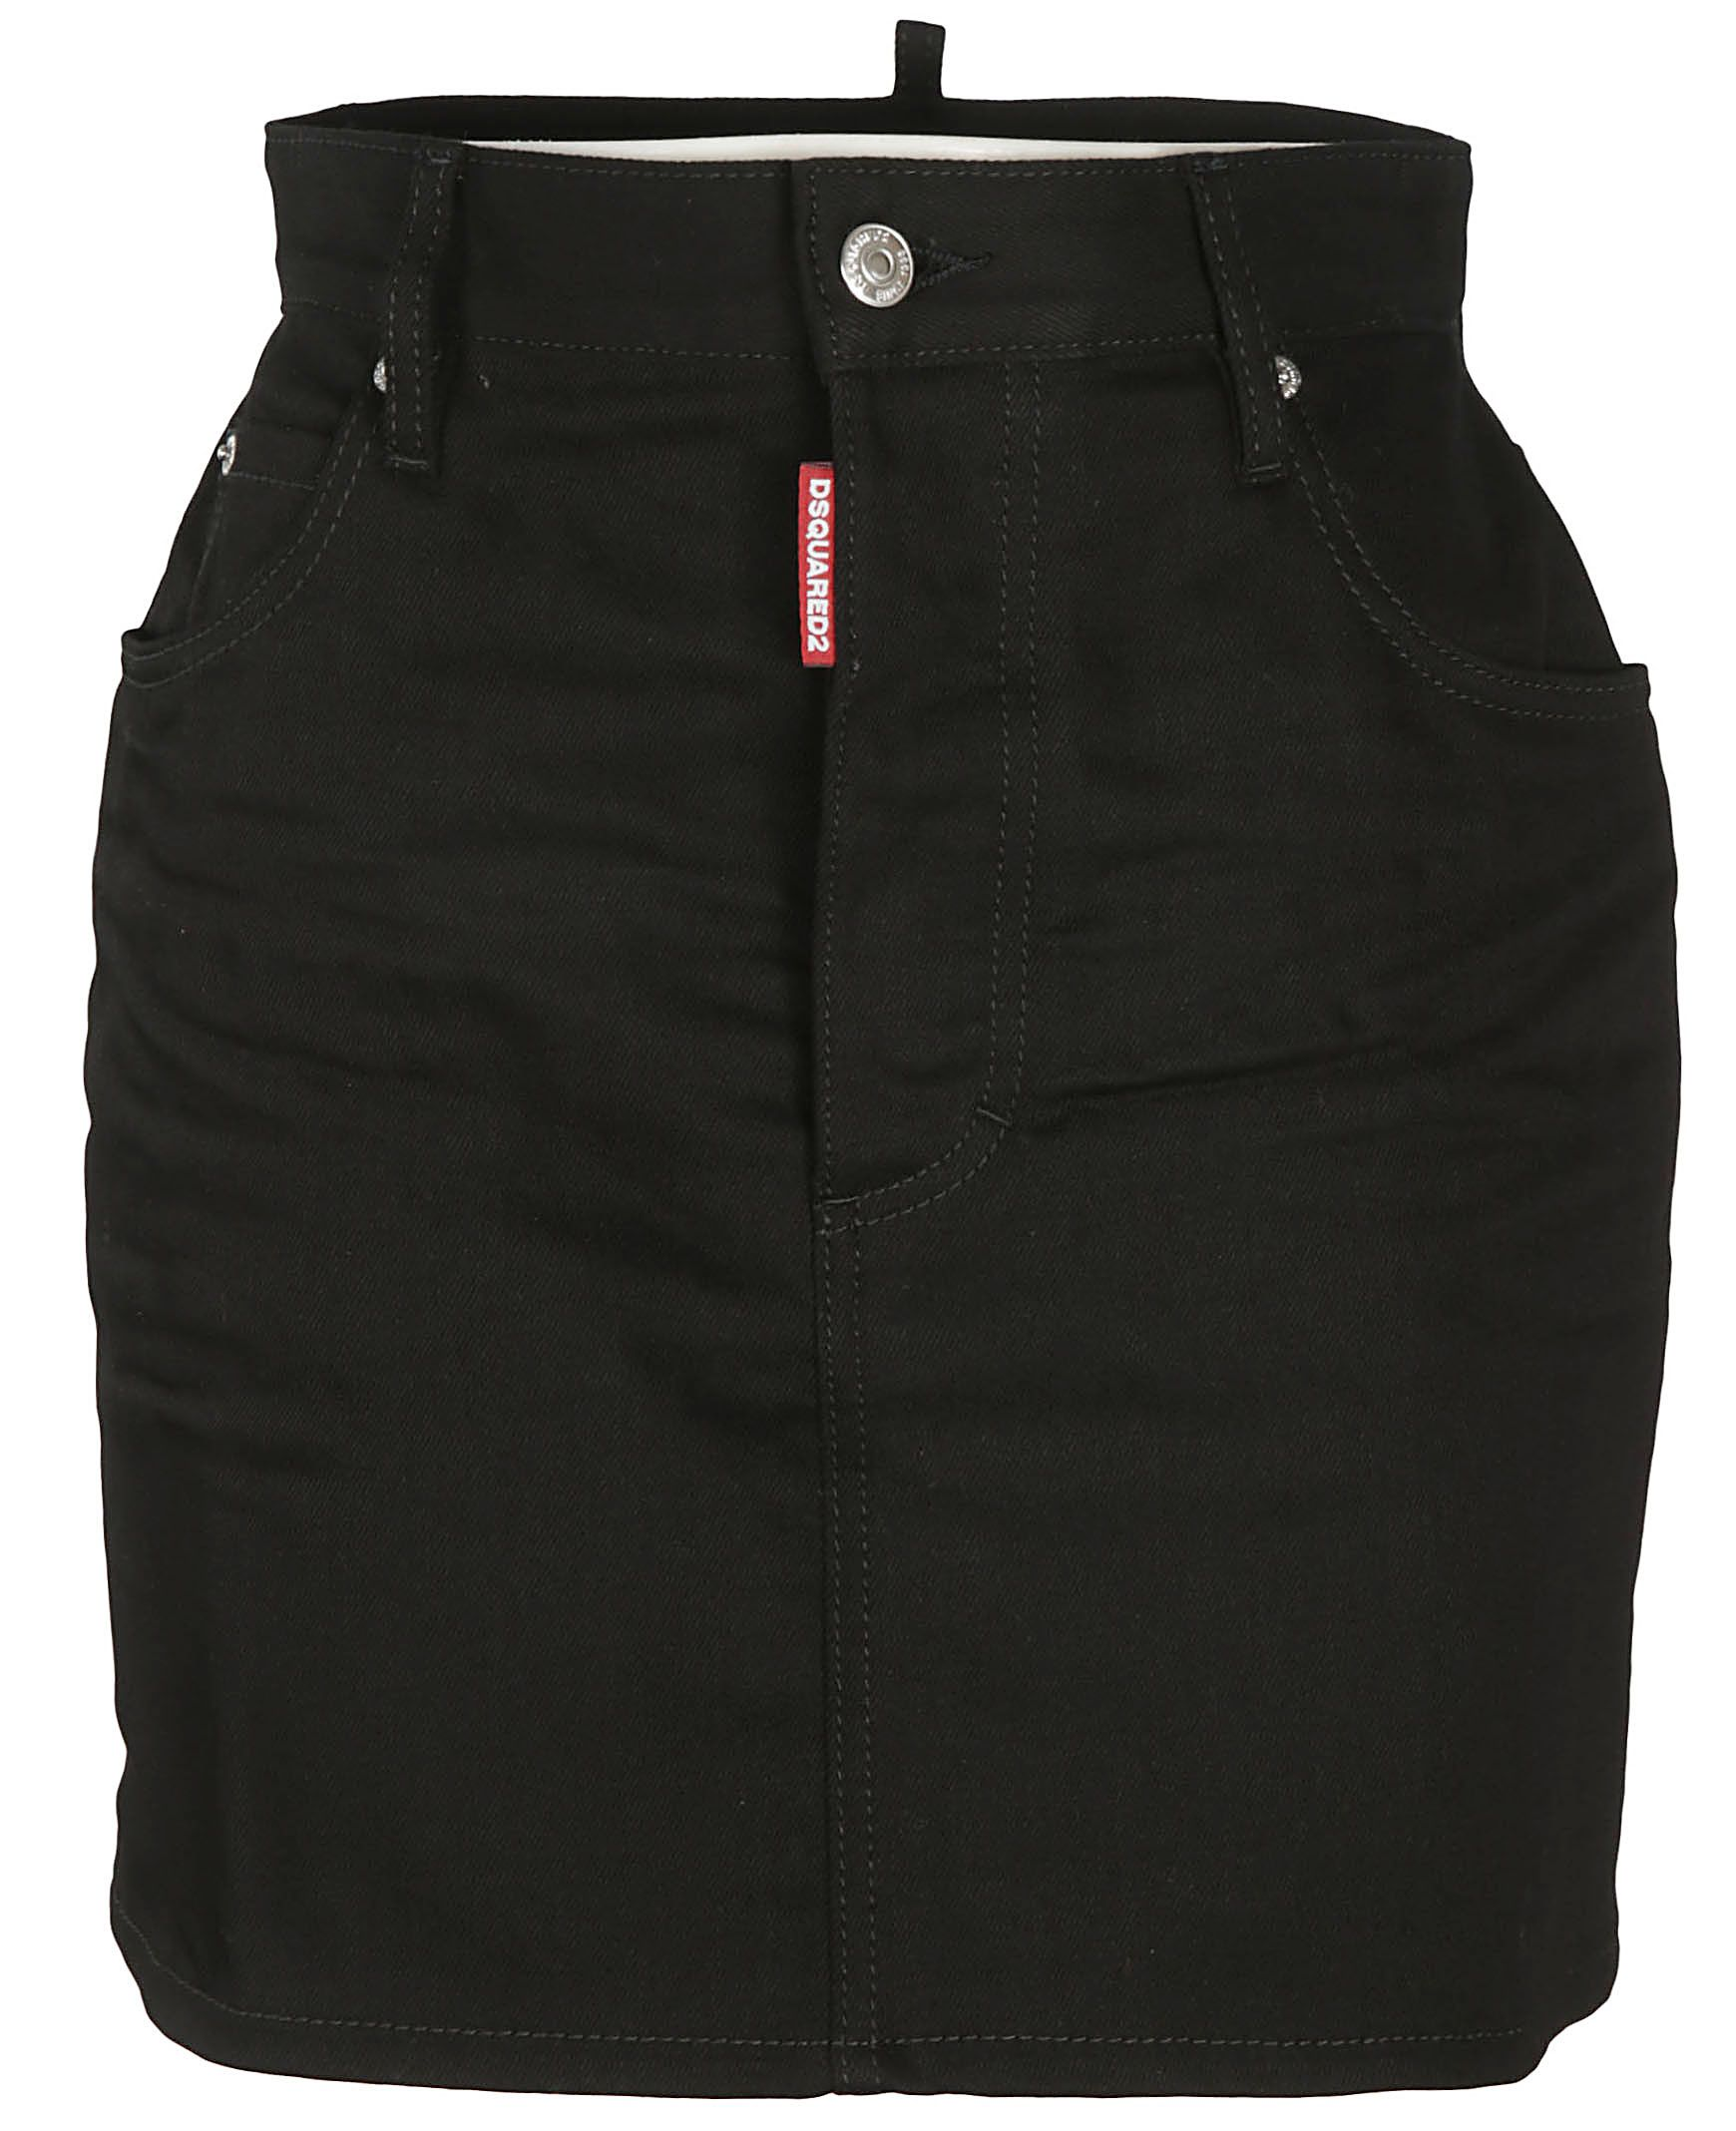 Dsquared2 Cottons DSQUARED2 WOMEN'S S80MA0002S30564900 BLACK OTHER MATERIALS SKIRT